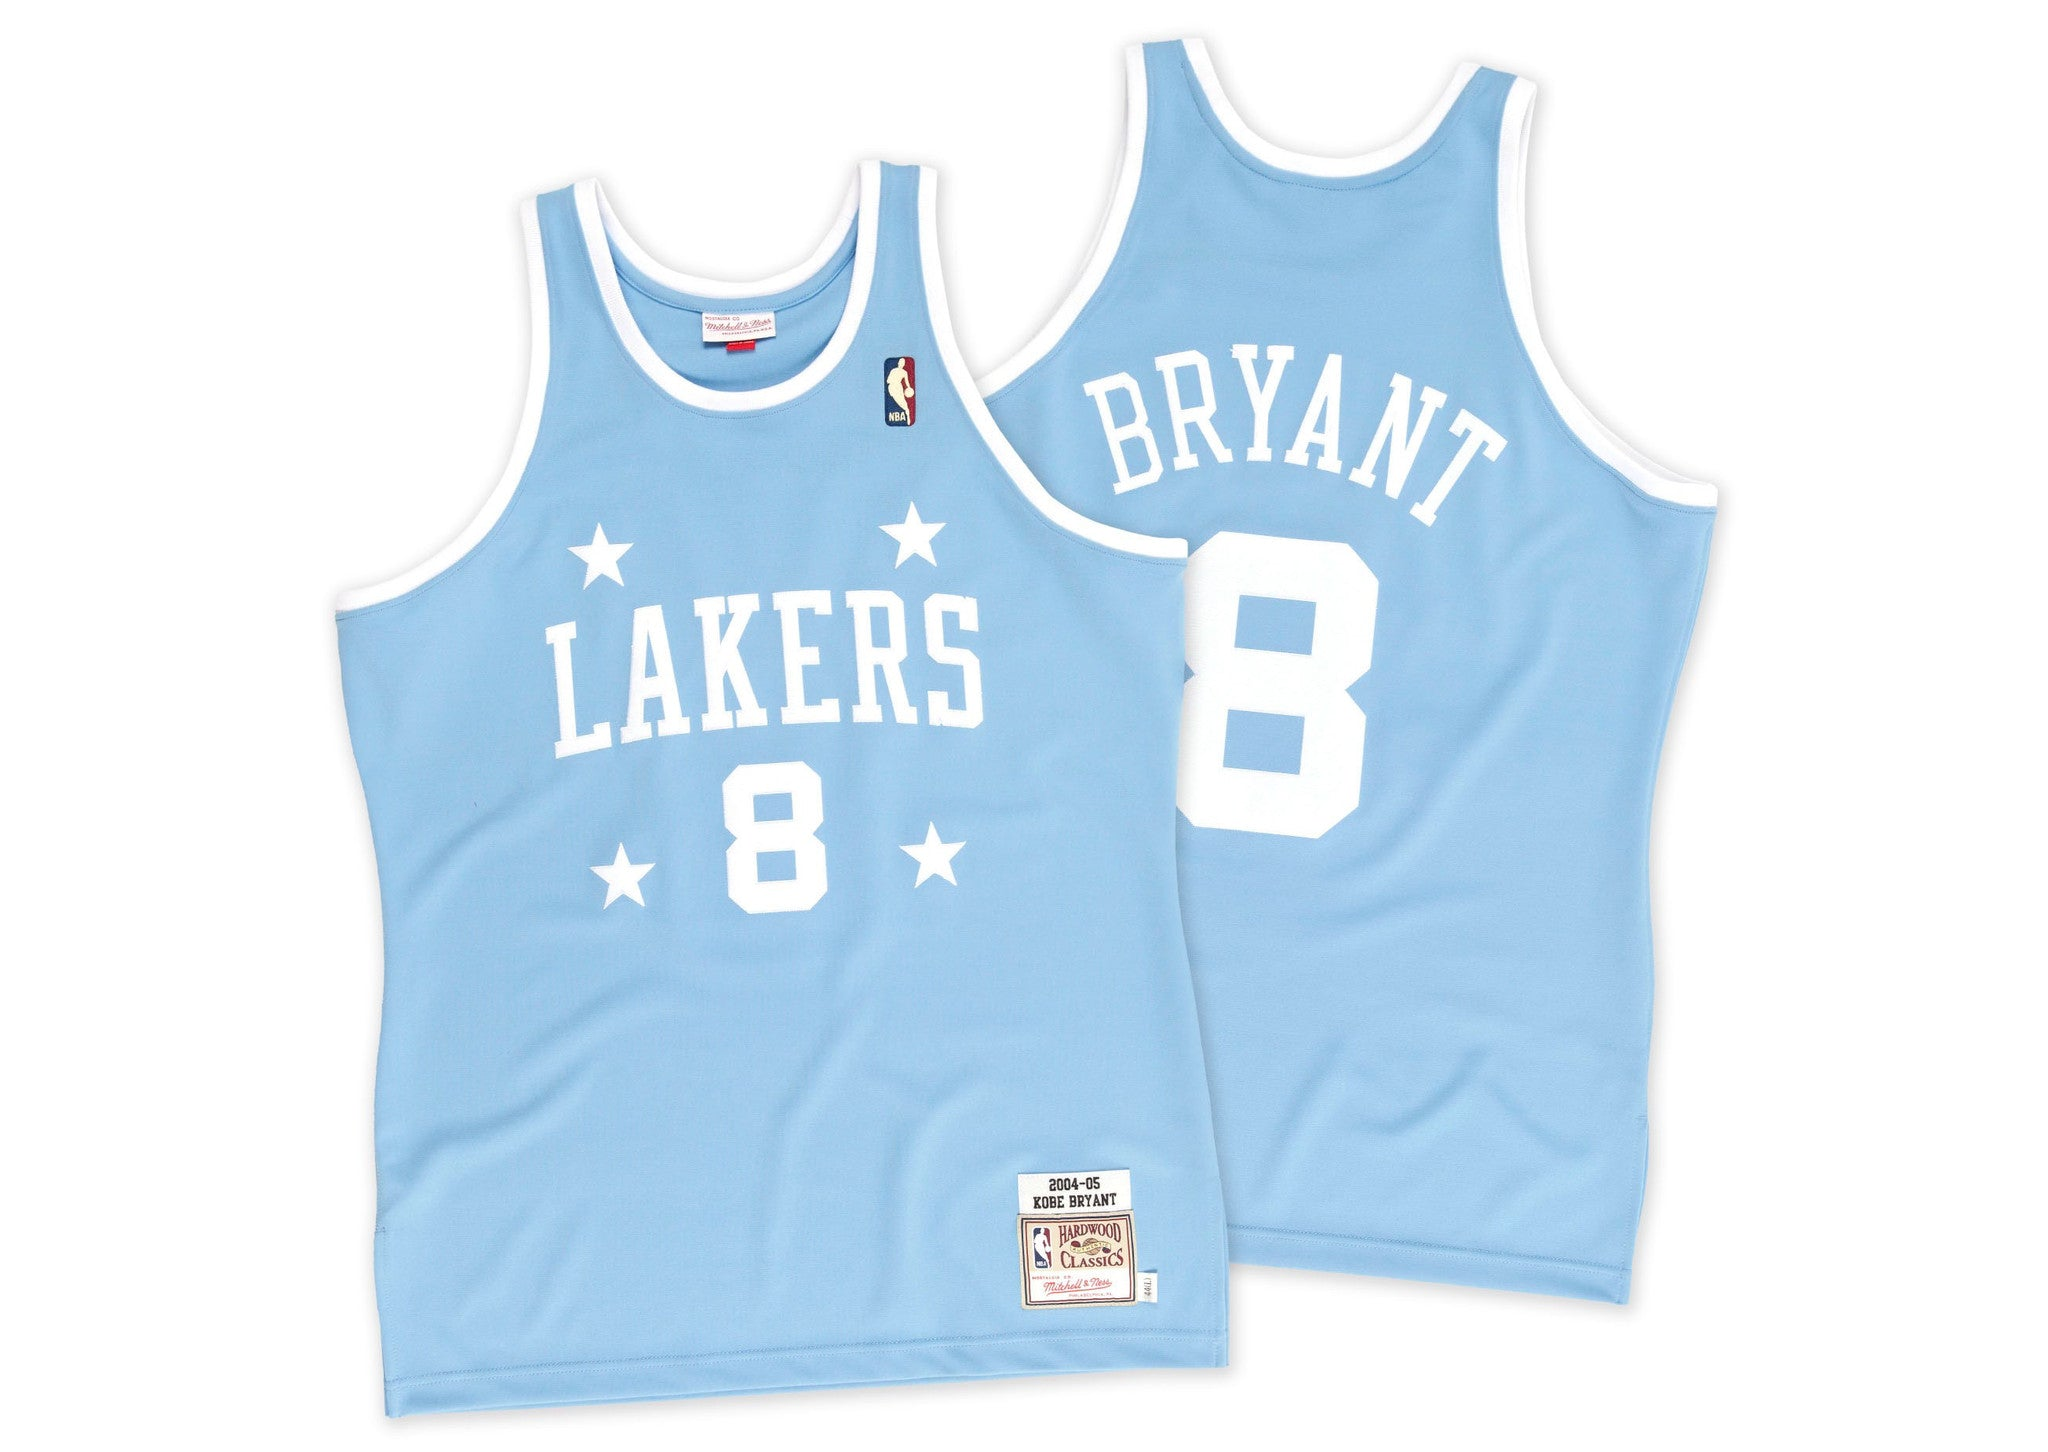 4b30b2fa883 ... germany mitchell ness kobe bryant 2004 05 authentic jersey los angeles  lakers in sky blue 716cc